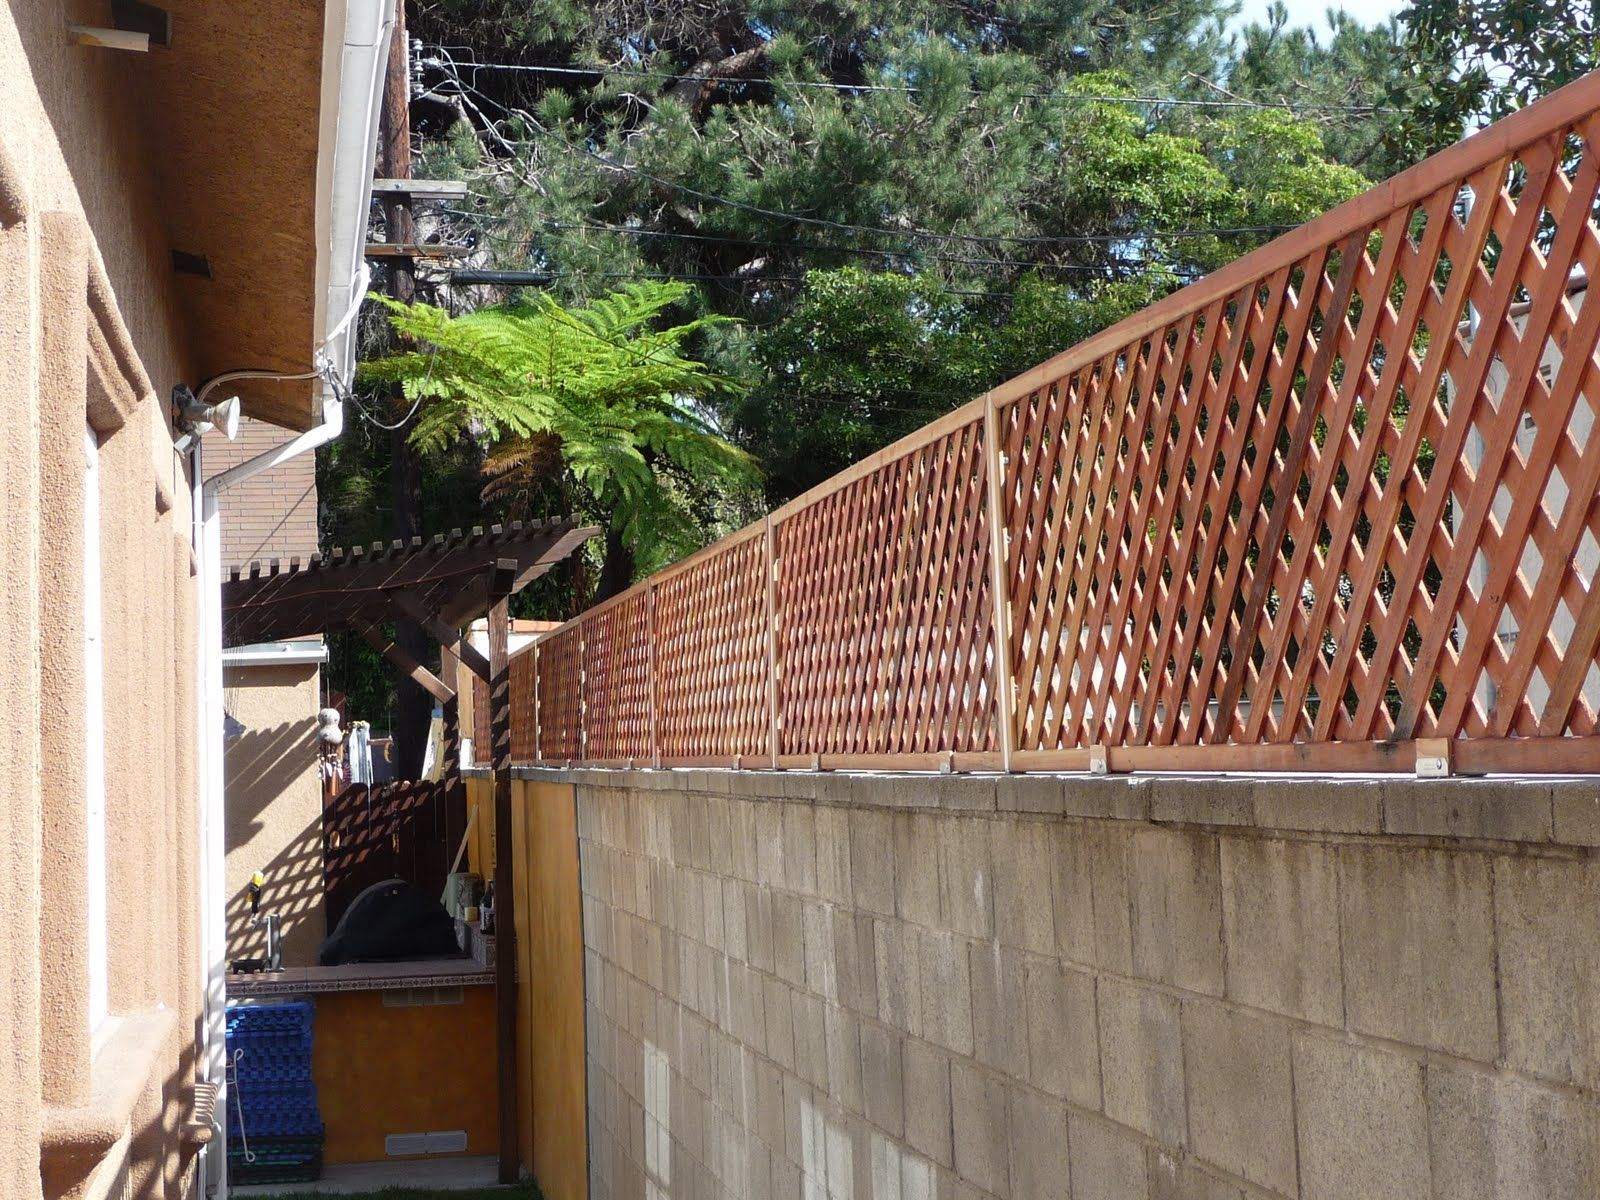 Thb Construction Privacy Trellis Added To Cinder Block Wall Cinder Block Walls Concrete Block Walls Privacy Trellis